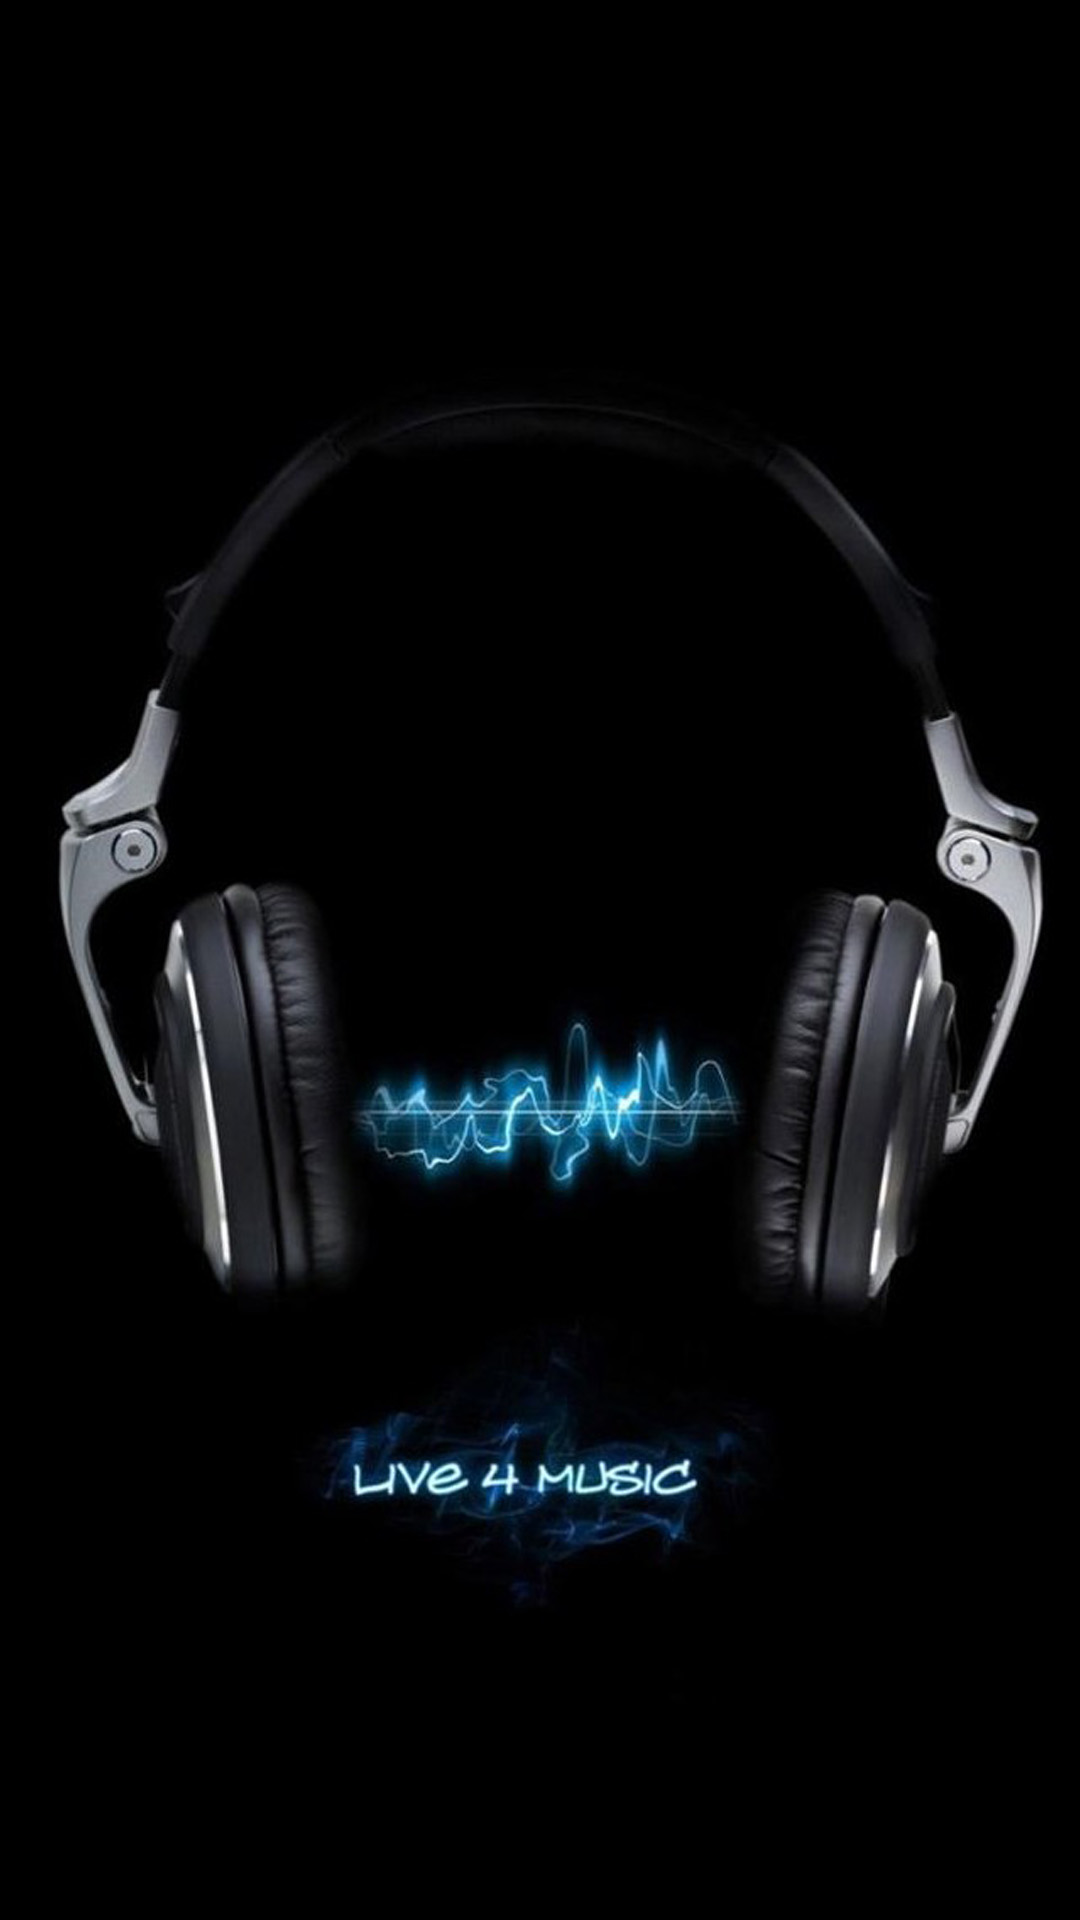 music live 4 music 3Wallpapers iPhone Parallax Music Live 4 Music